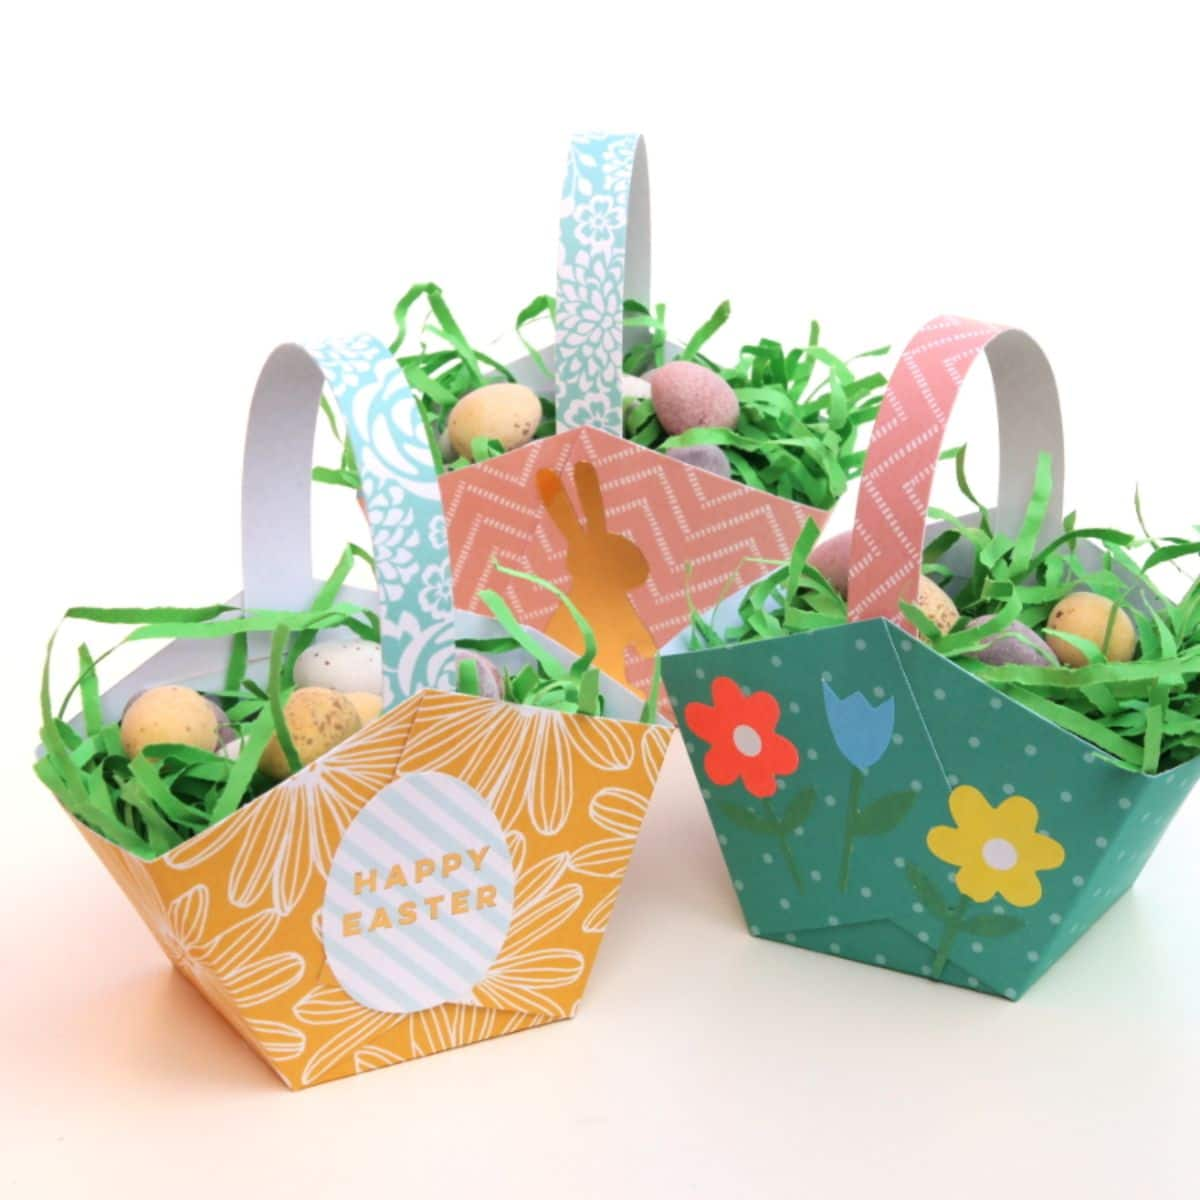 3 paper baskets colored in green, orange and pink and decorated with flowers contain fake grass and chocolate eggs